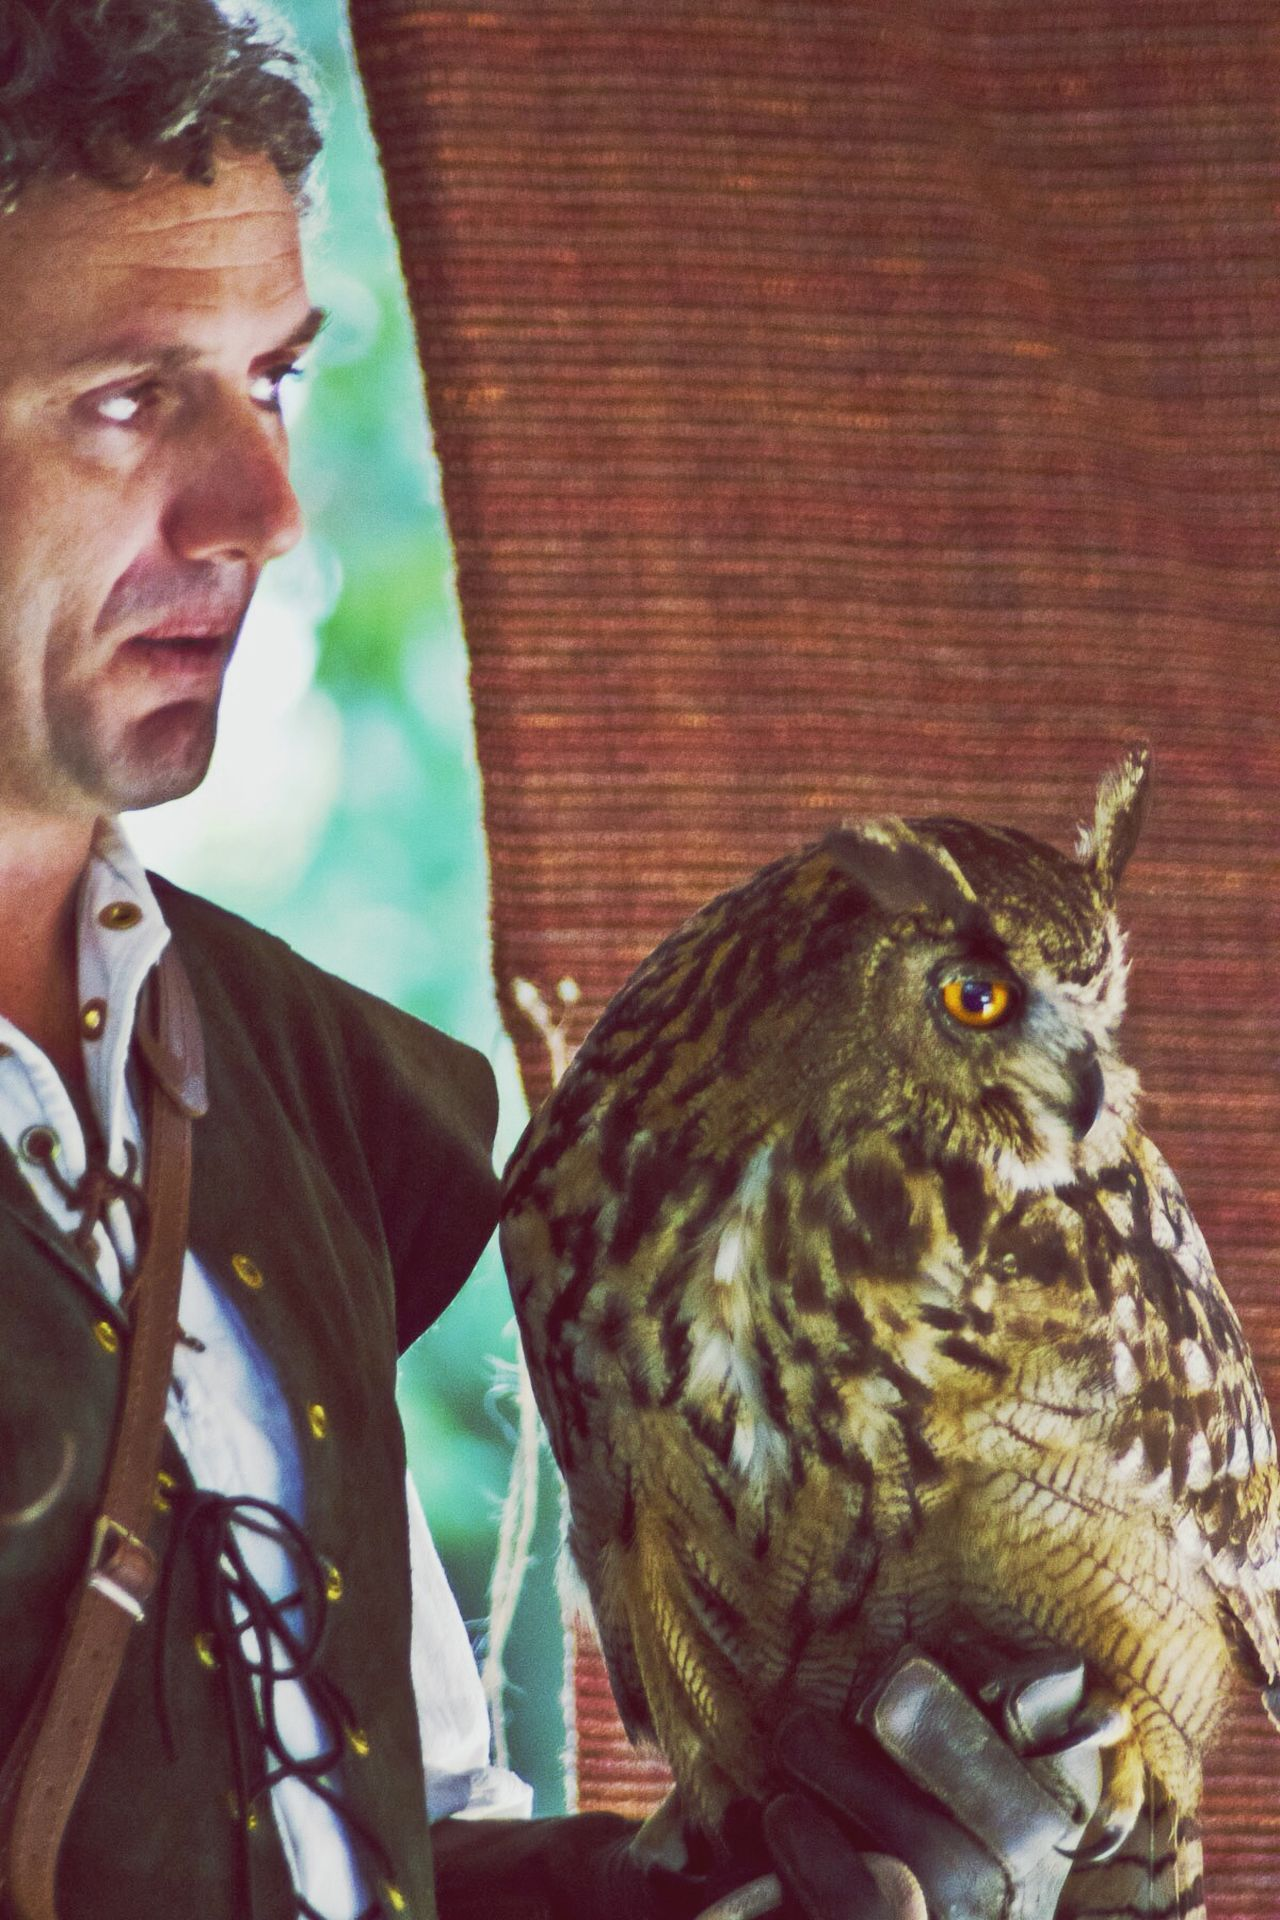 Bird Bird Trainer Canon Photography Day Eyebrows Falconry Filtered Image Glove Gloved Hand Hunter In Touch With Nature Indoors  Majestic Man And Beast Man And Nature Mysticism And Magic Medieval Medieval Clothing One Animal One Person Owl Owl Eyes People Pets Of Eyeem Real People Trainer